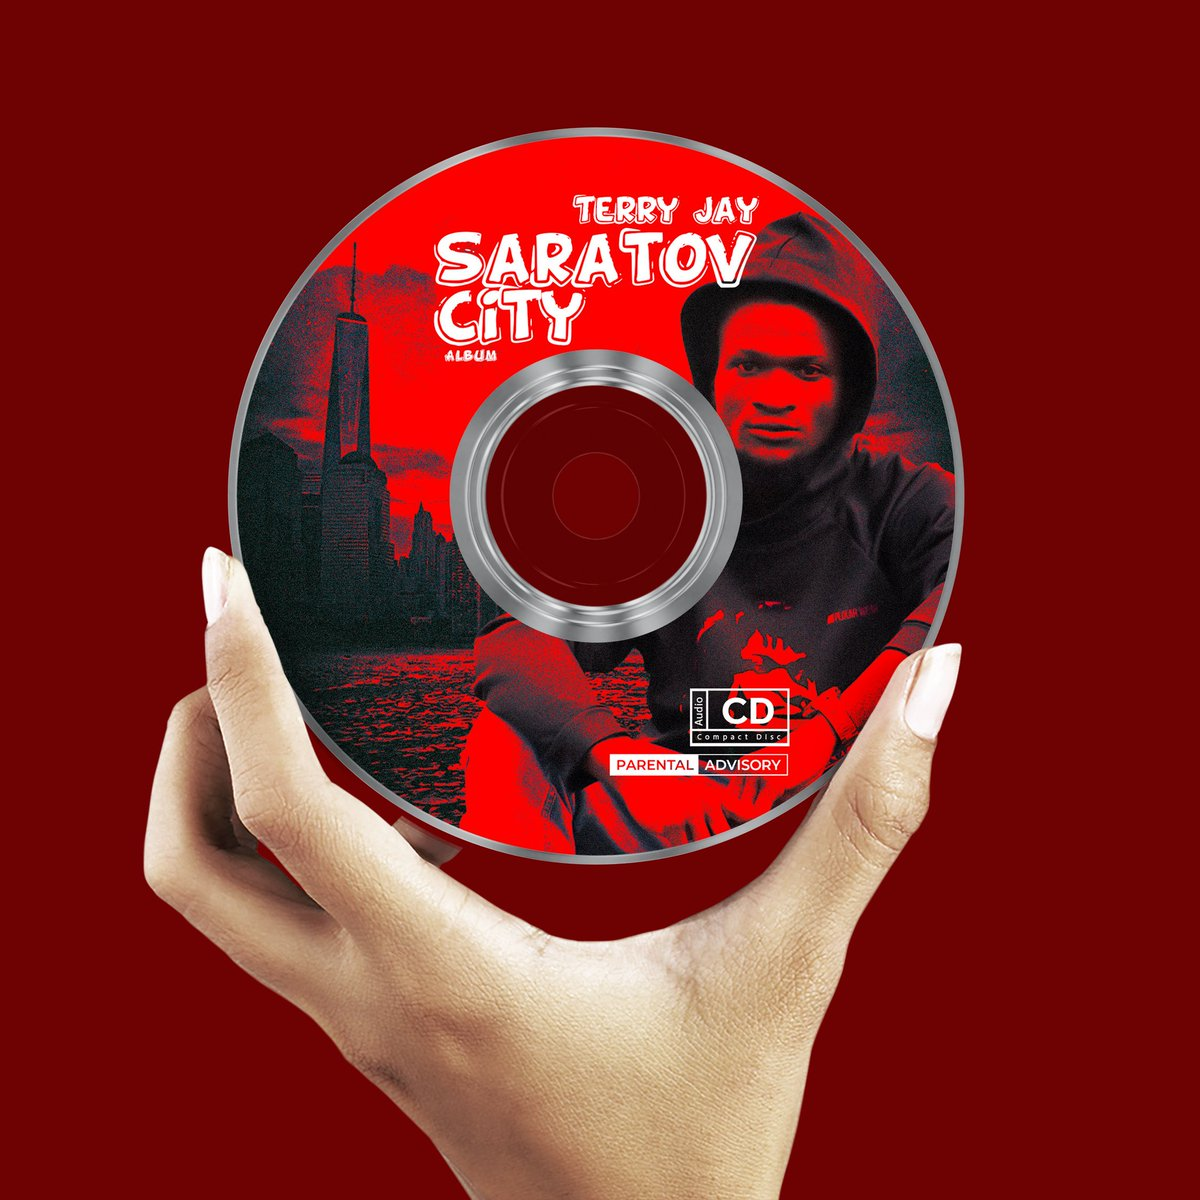 Grab your physical Copies of Terry JAY SARATOV CiTY ALBUM on all the Major Music Stores #SARATOVCiTY  #SARATOVCiTY #SaratovCity #ГородСаратов #Саратов #саратовсити $$$$$$$pic.twitter.com/UxnqqwMqv6